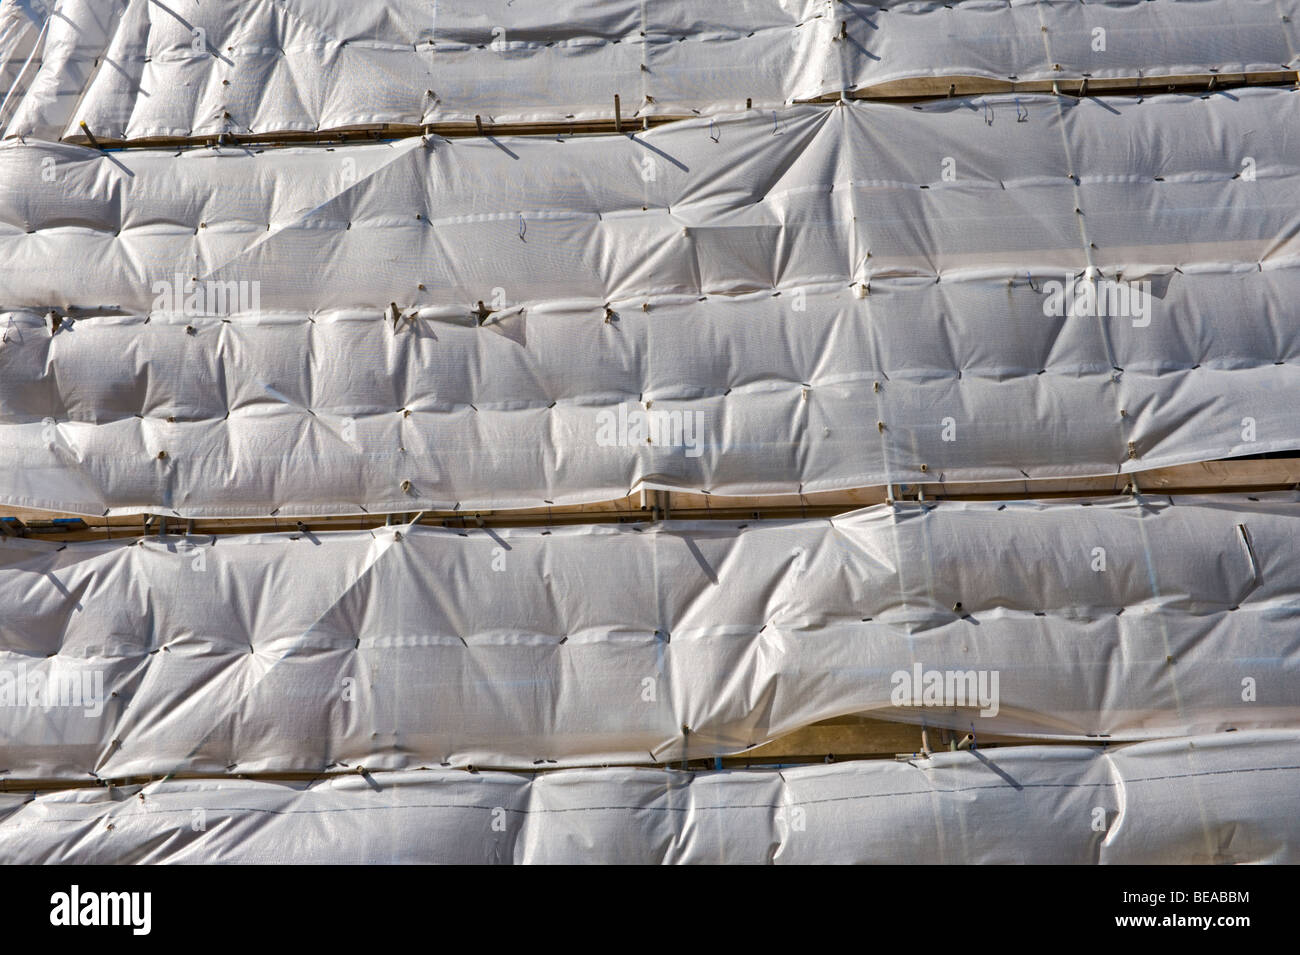 Building being renovated covered in plastic sheet Newport South Wales UK - Stock Image